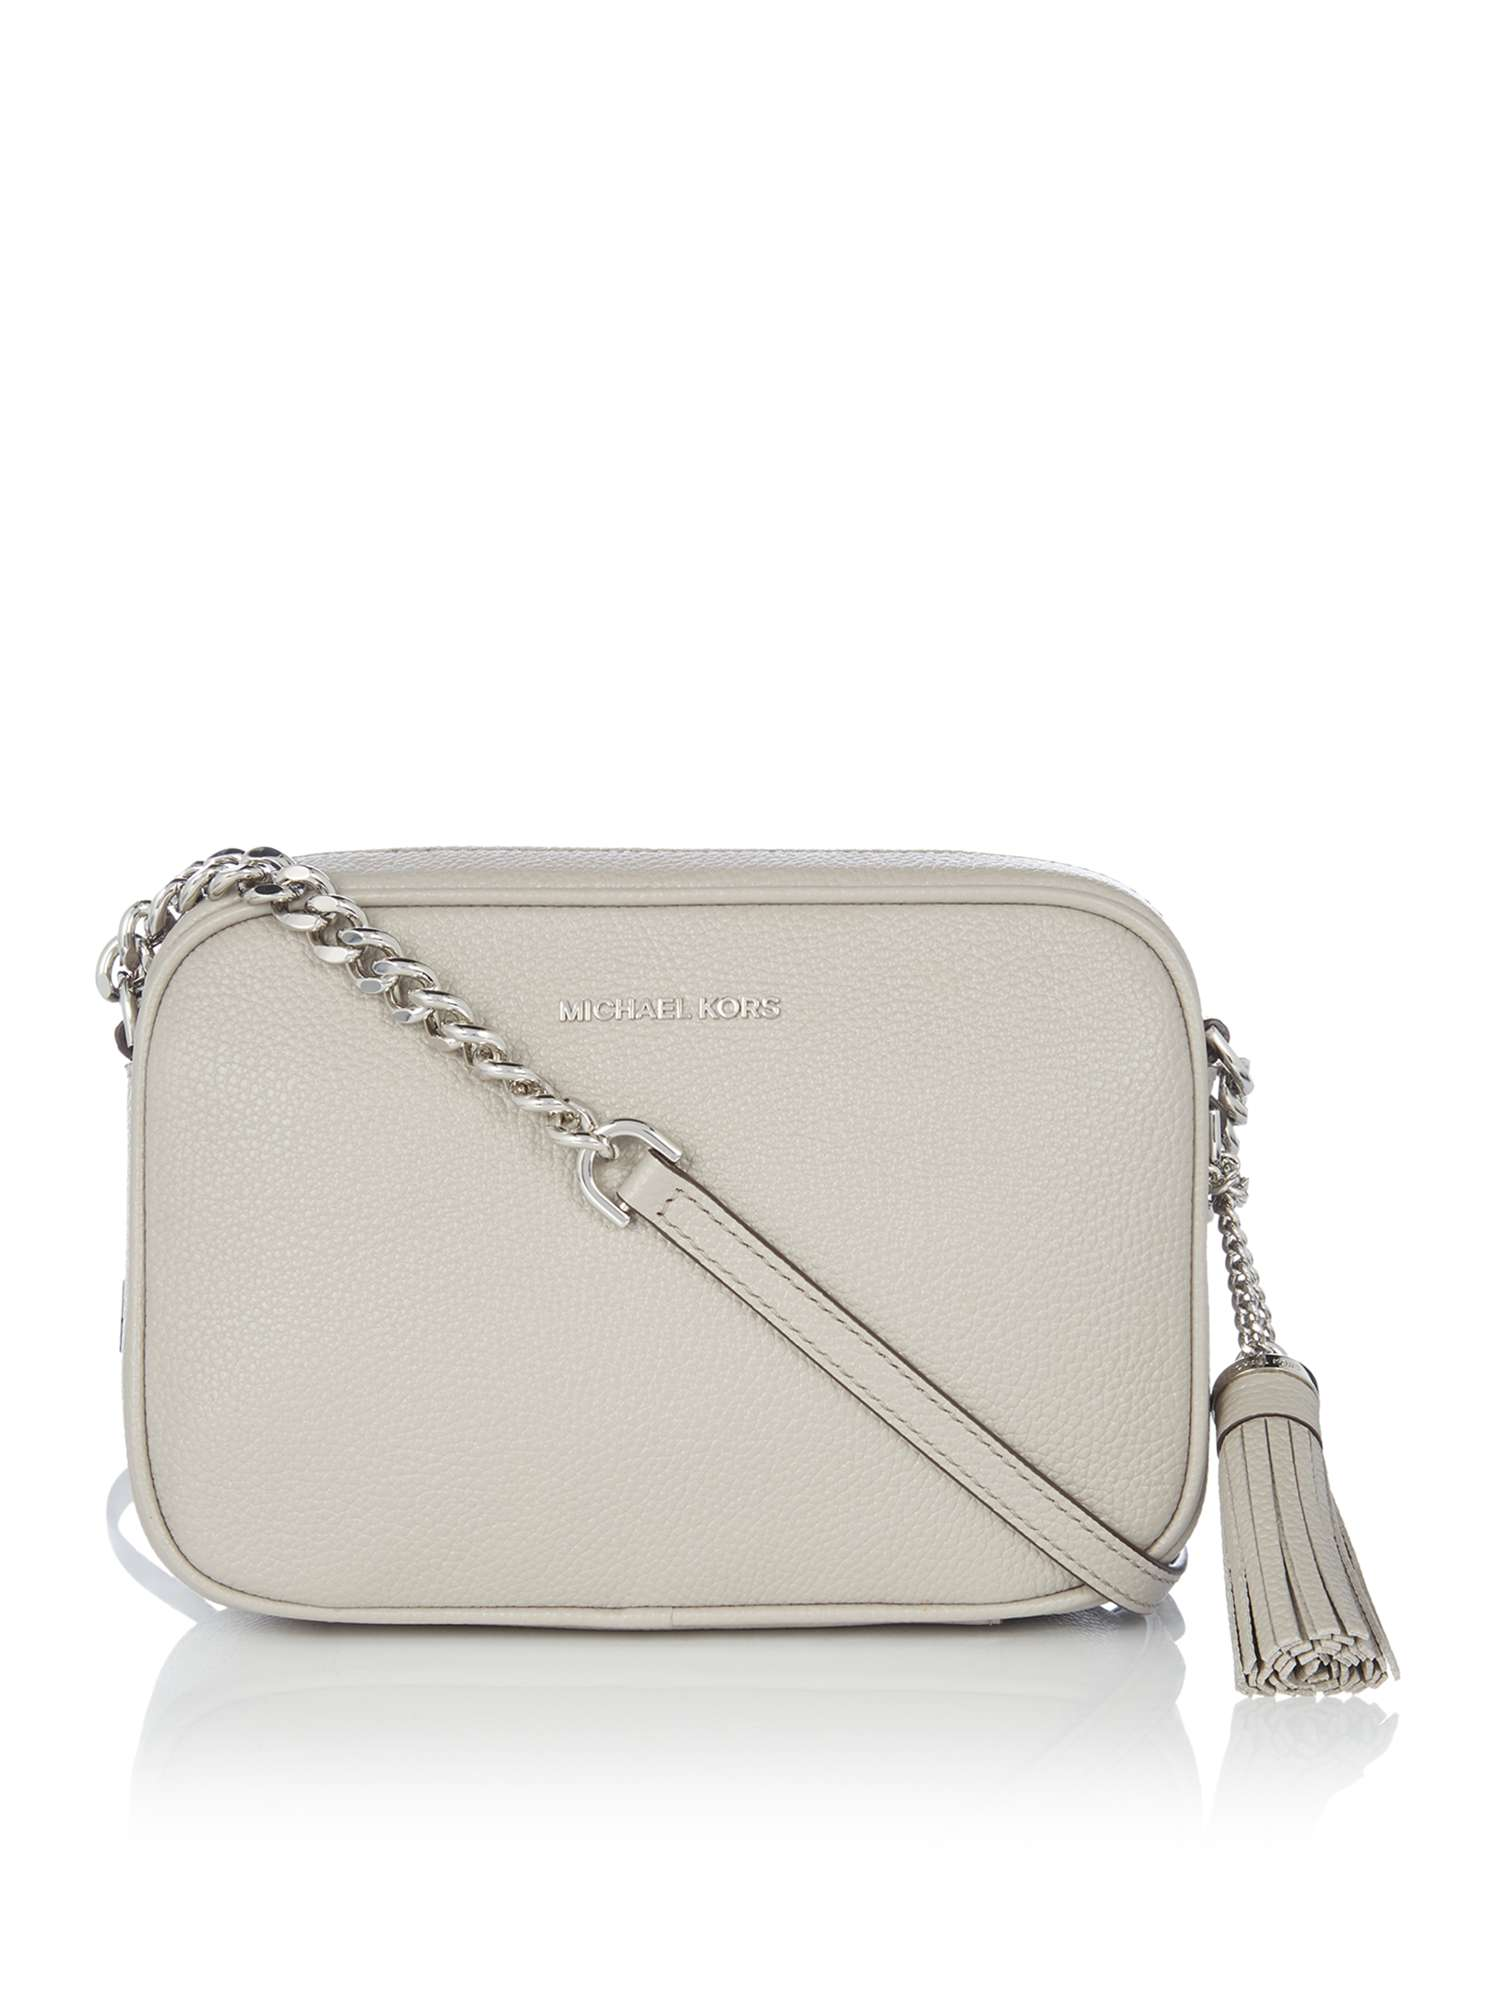 Michael Kors Ginny Medium Camera Crossbody Bag